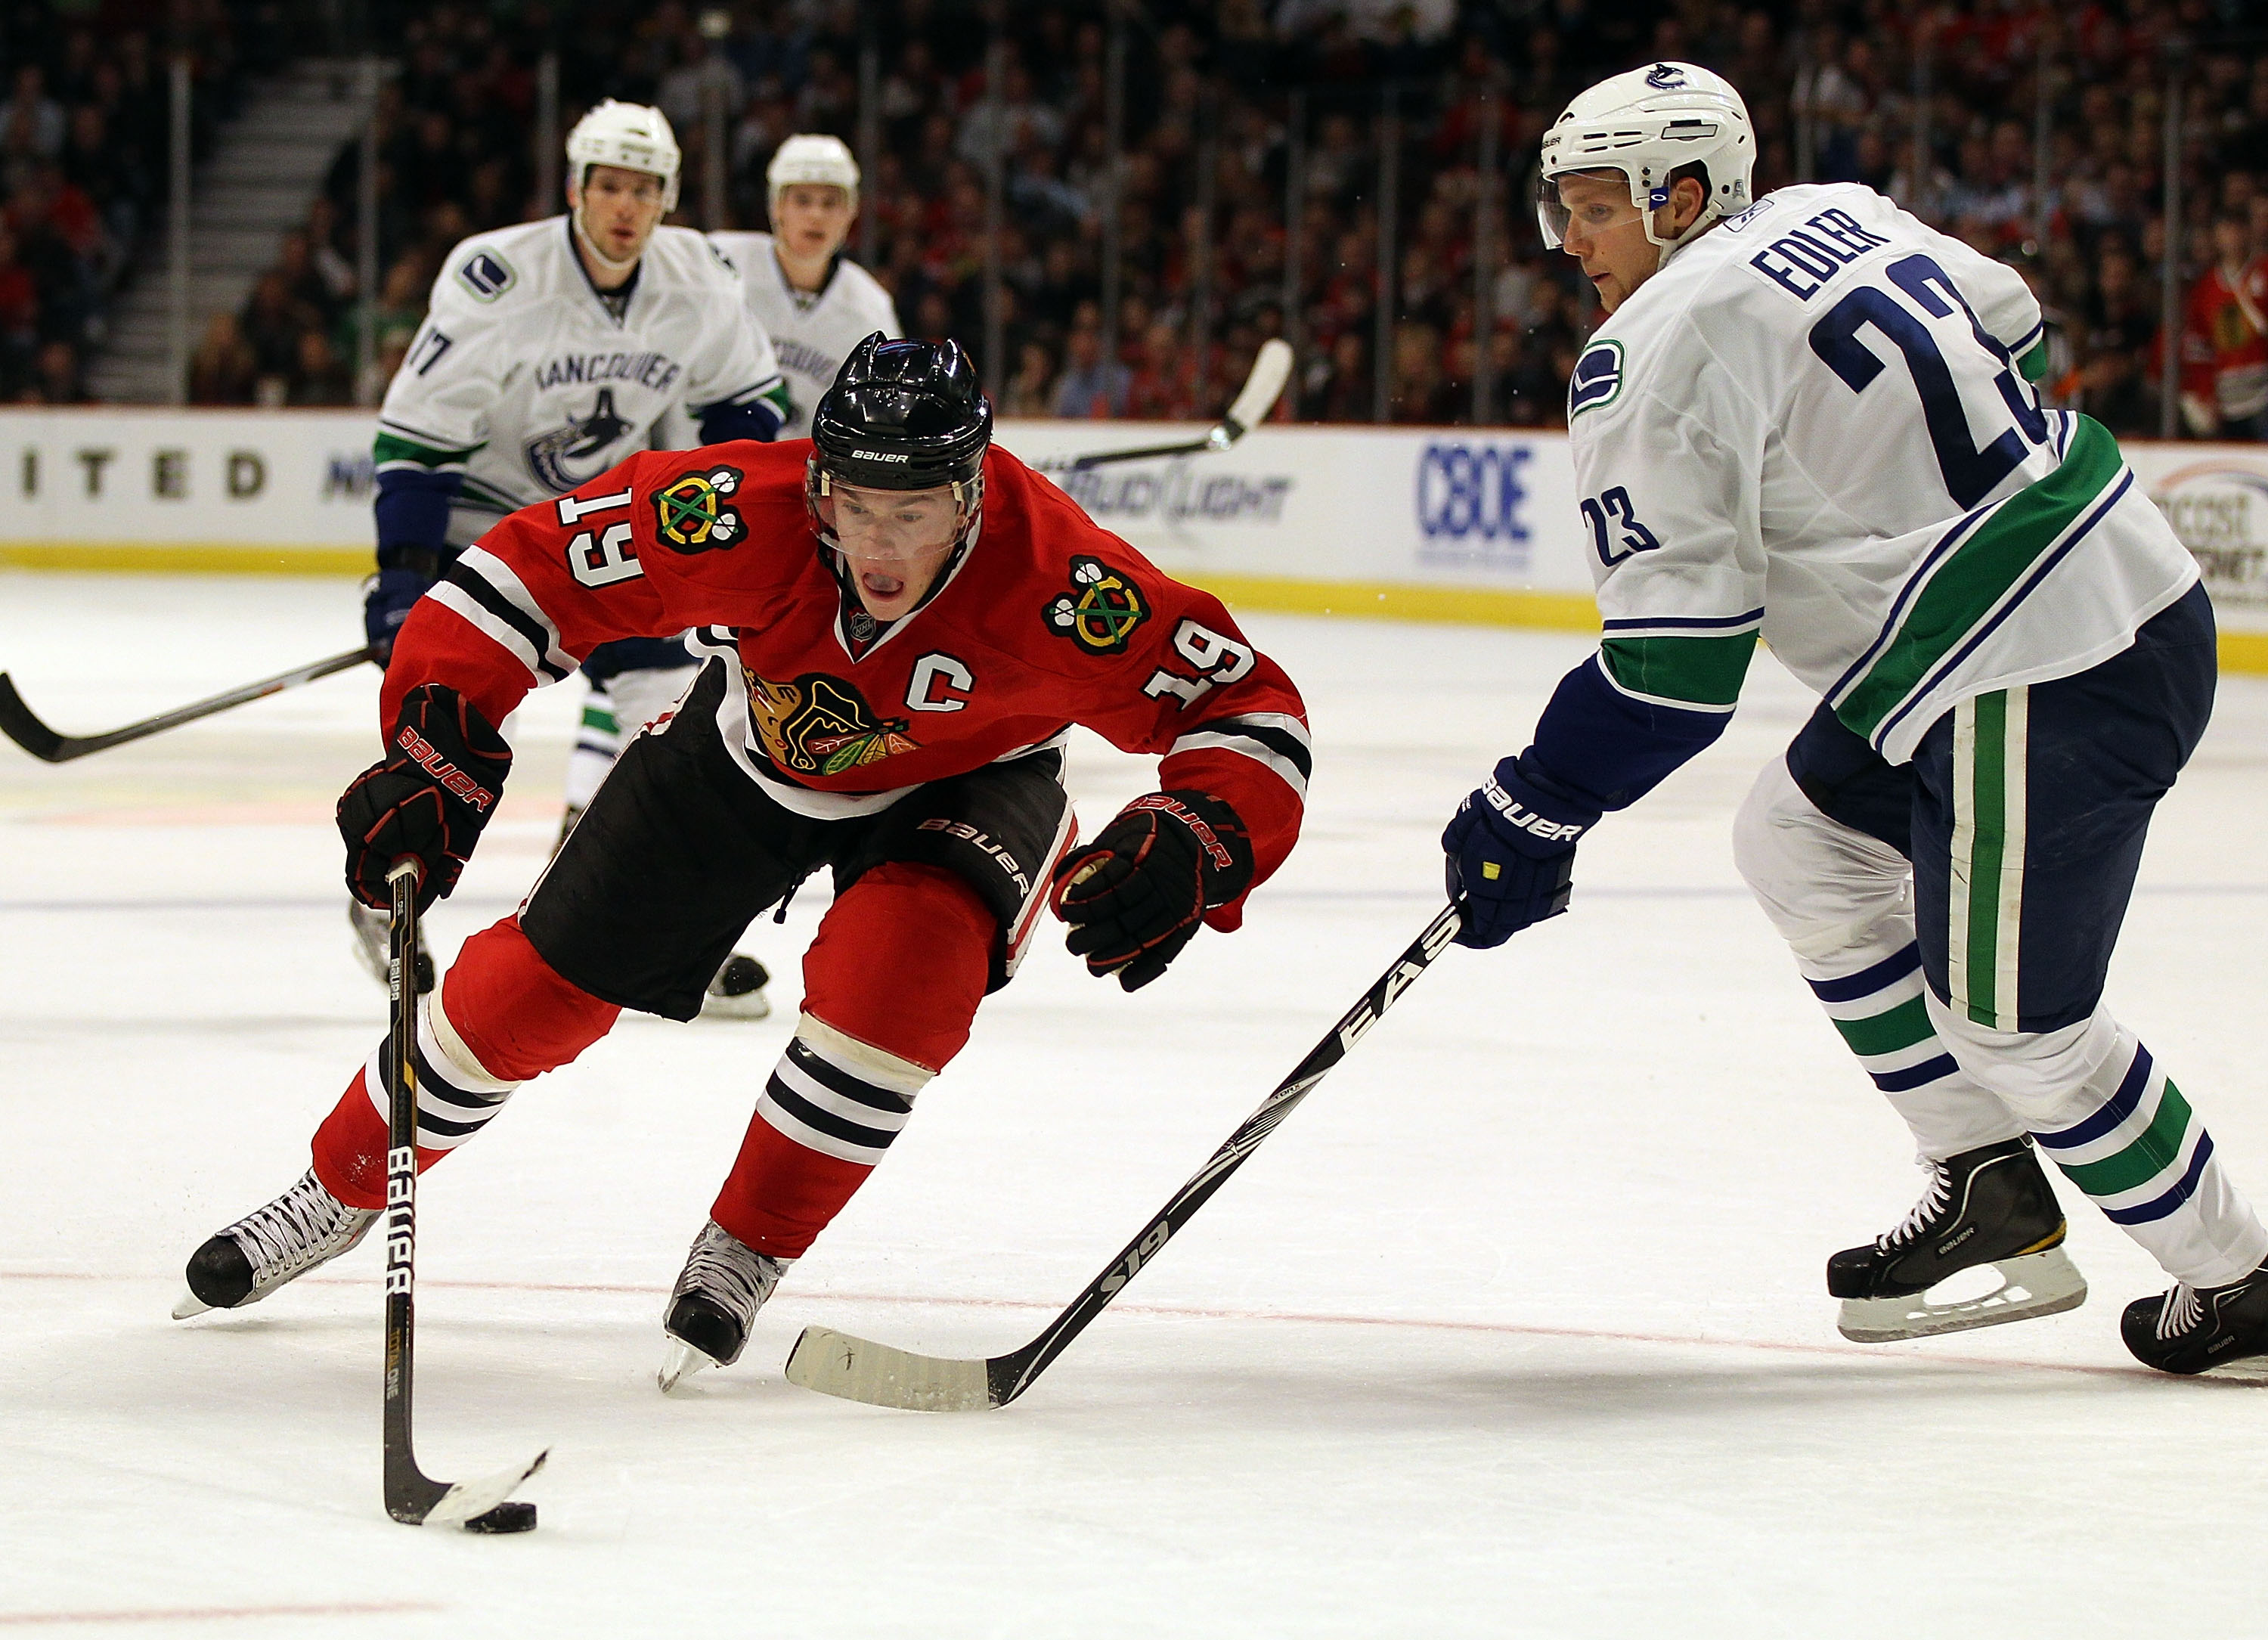 CHICAGO, IL - DECEMBER 03: Jonathan Toews #19 of the Chicago Blackhawks controls the puck against Alexander Edler #23 of the Vancouver Canucks at the United Center on December 3, 2010 in Chicago, Illinois. The Canucks defeated the Blackhawks 3-0.  (Photo